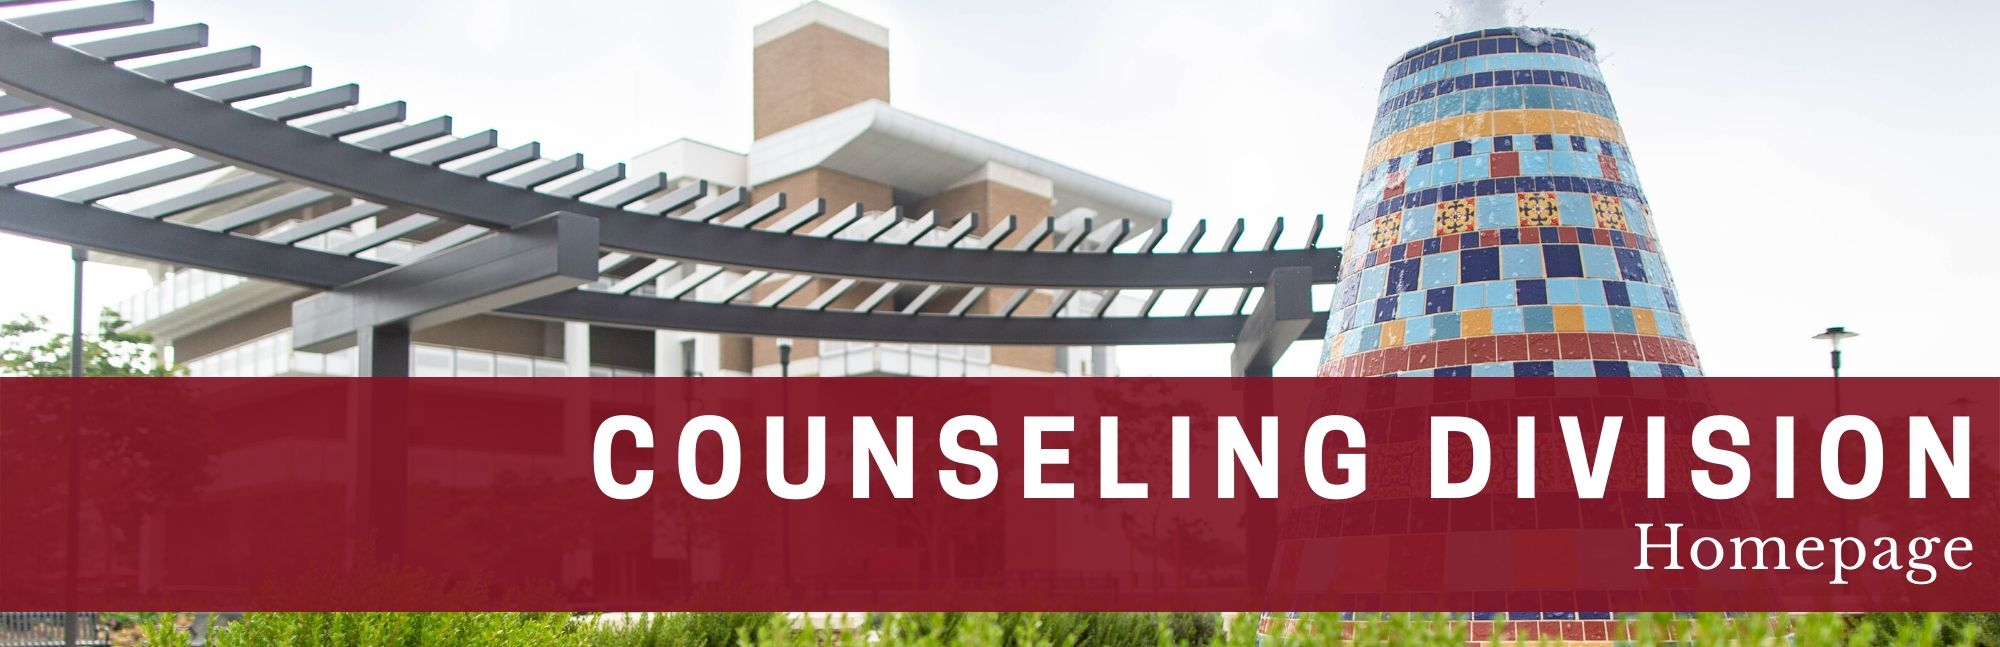 Counseling division